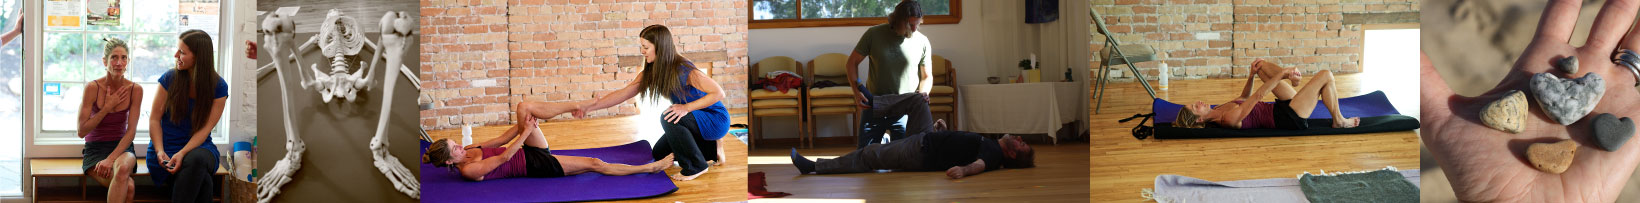 Work 1:1 with Erin Geesaman Rabke and Carl Rabke of BodyHappy.com